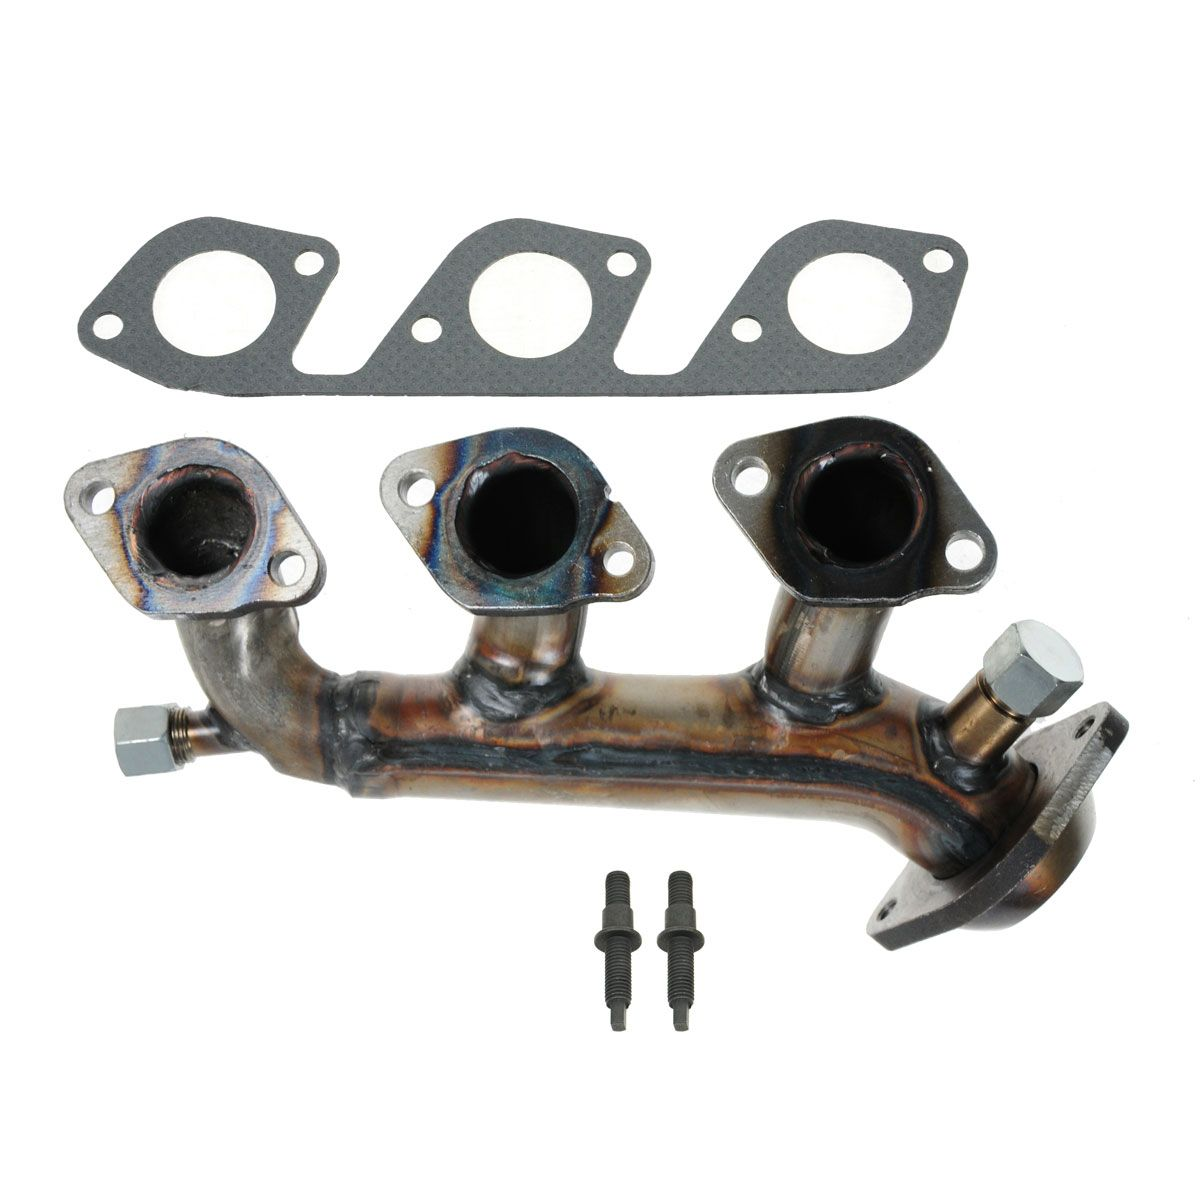 Right Exhaust Manifold For 1999-2004 Ford Mustang 3.8L V6 2000 2003 2001 2002